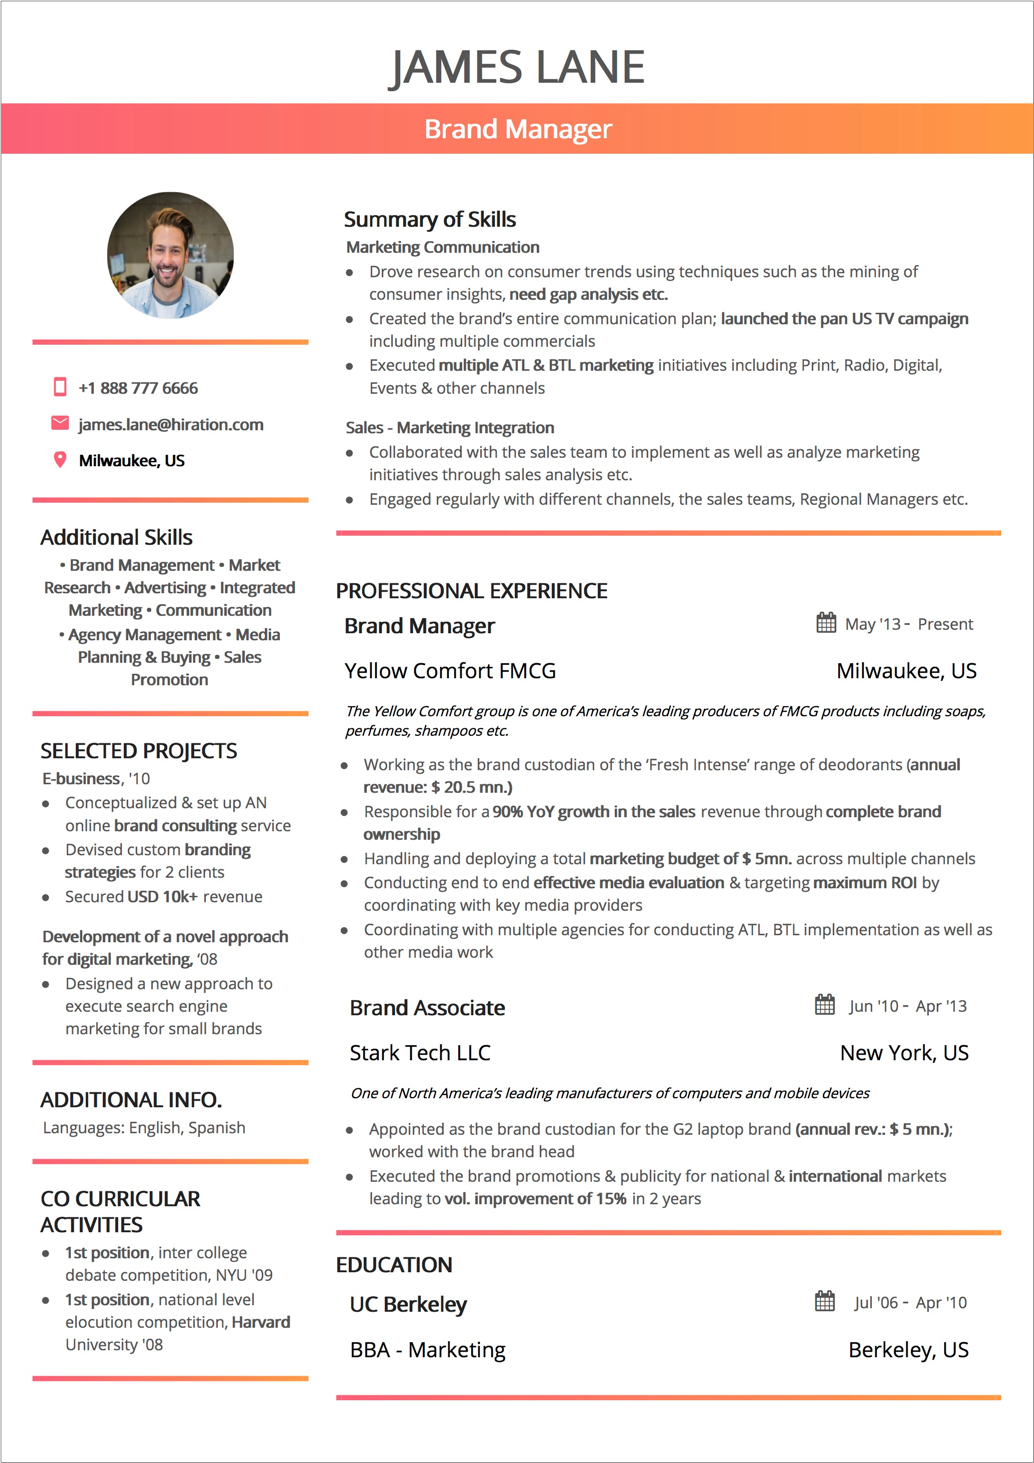 Combination Resume The 2018 Guide To Combination Resumes